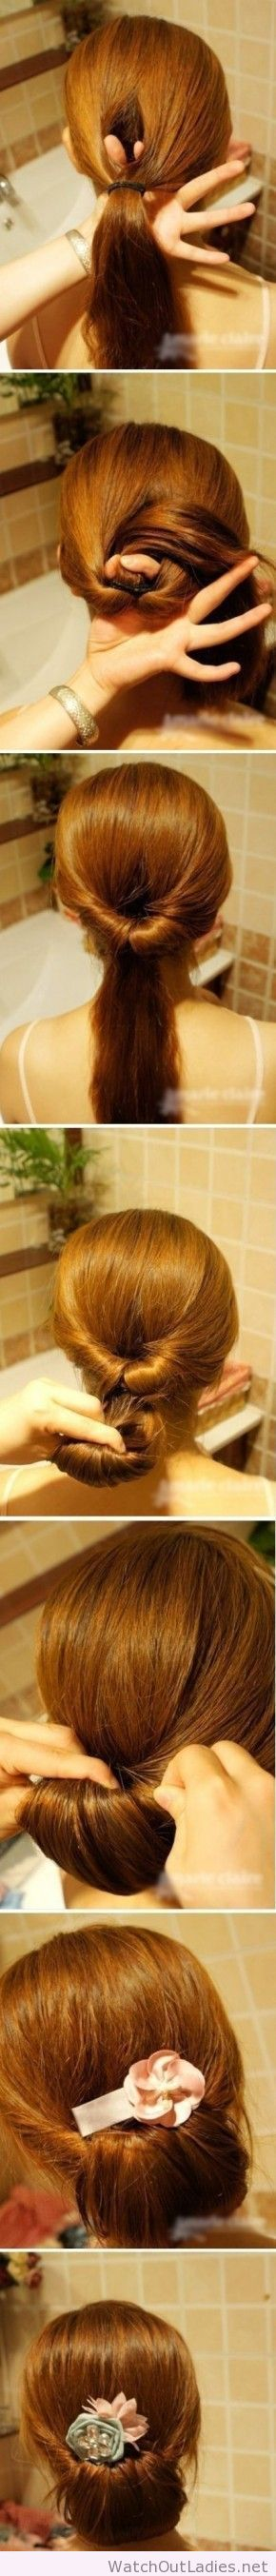 Wonderful updo tutorial with accessories